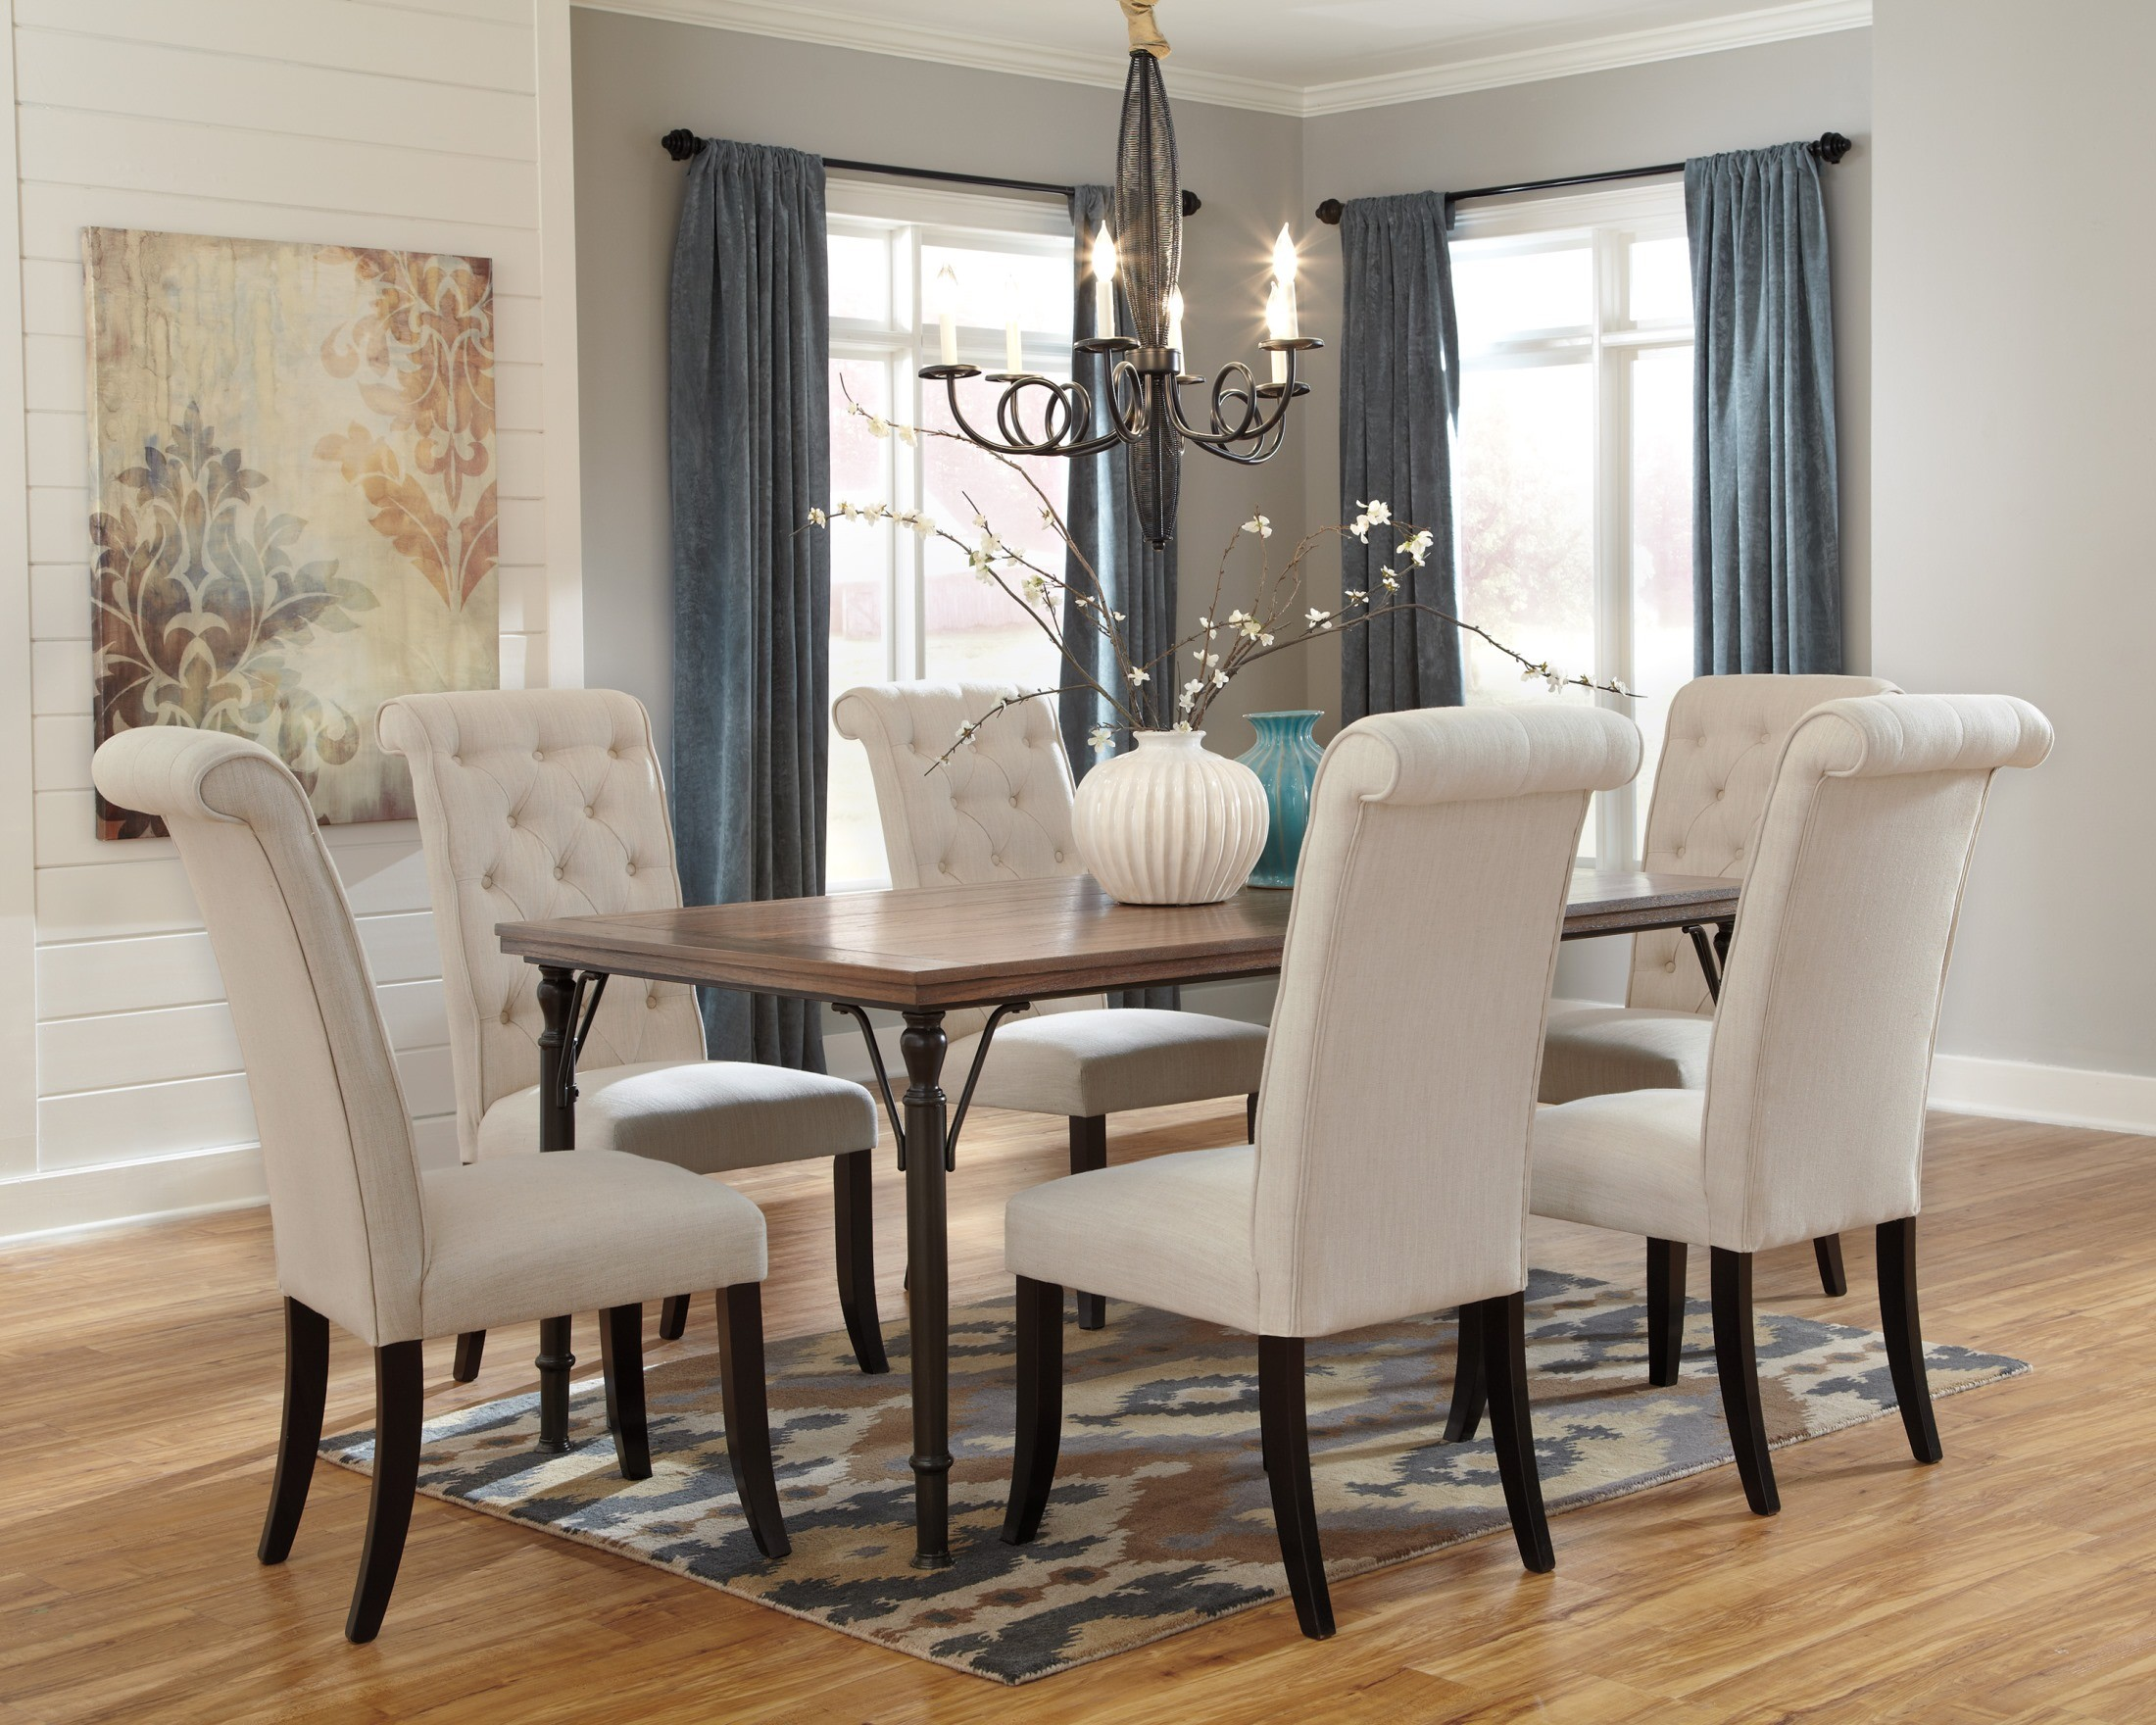 Tripton Rectangular Dining Room Set from Ashley D530 25  : d530 25 0161 from colemanfurniture.com size 2200 x 1760 jpeg 712kB